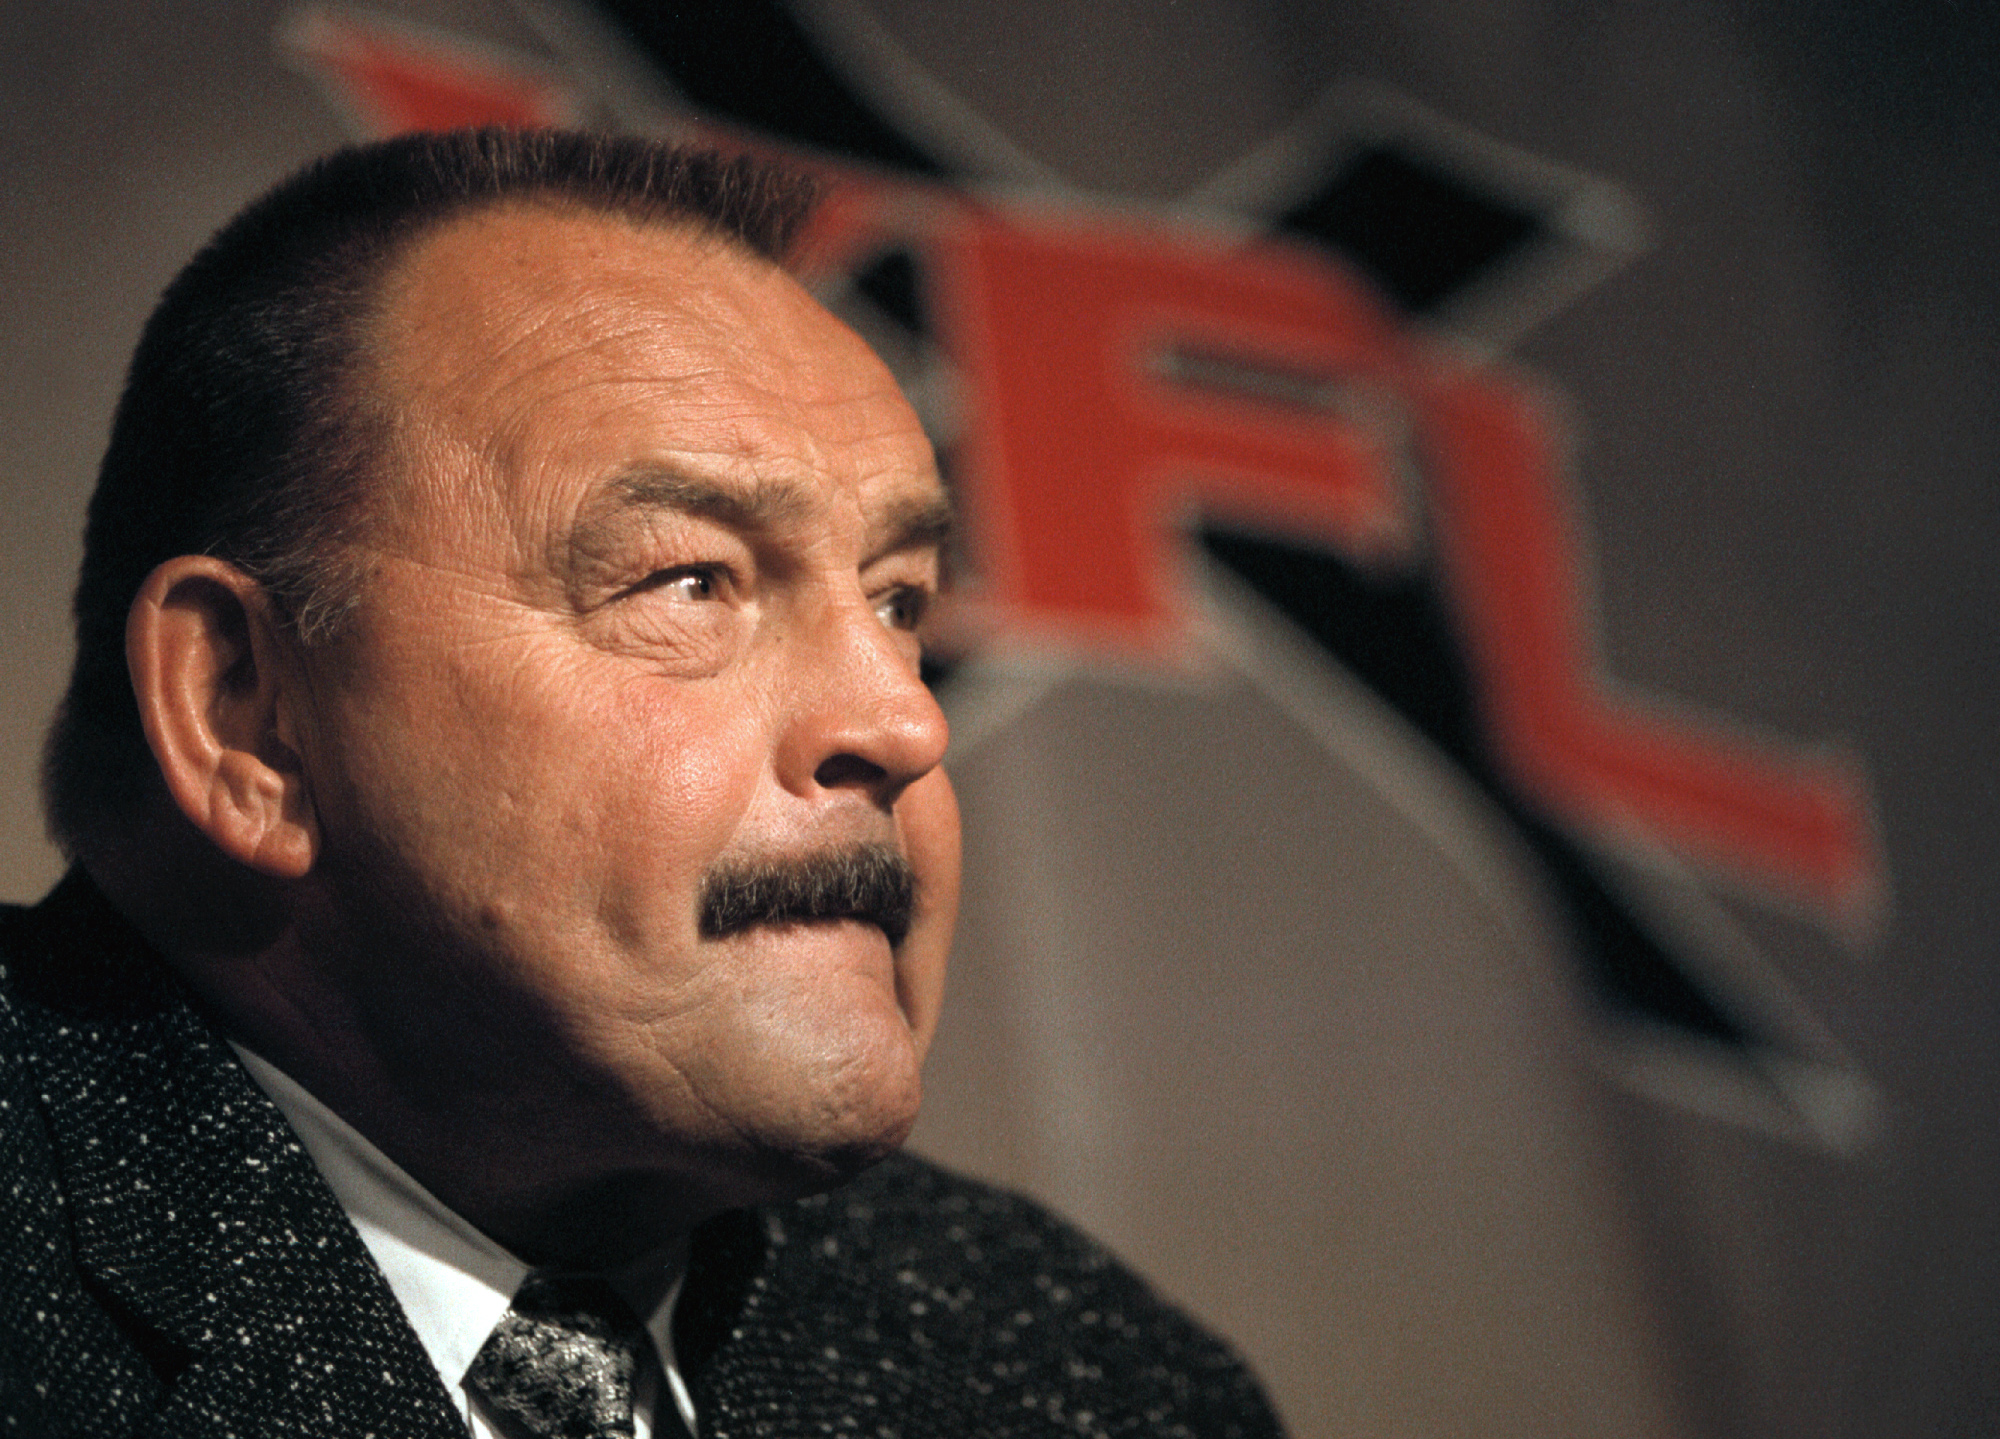 373444 03: NFL Hall of Famer and legendary Chicago Bear linebacker and actor Dick Butkus ponders a reporter's question during a press conference July 19, 2000 in Chicago, IL. Butkus was announced Head Coach of Chicago's XFL football team, and will begin p